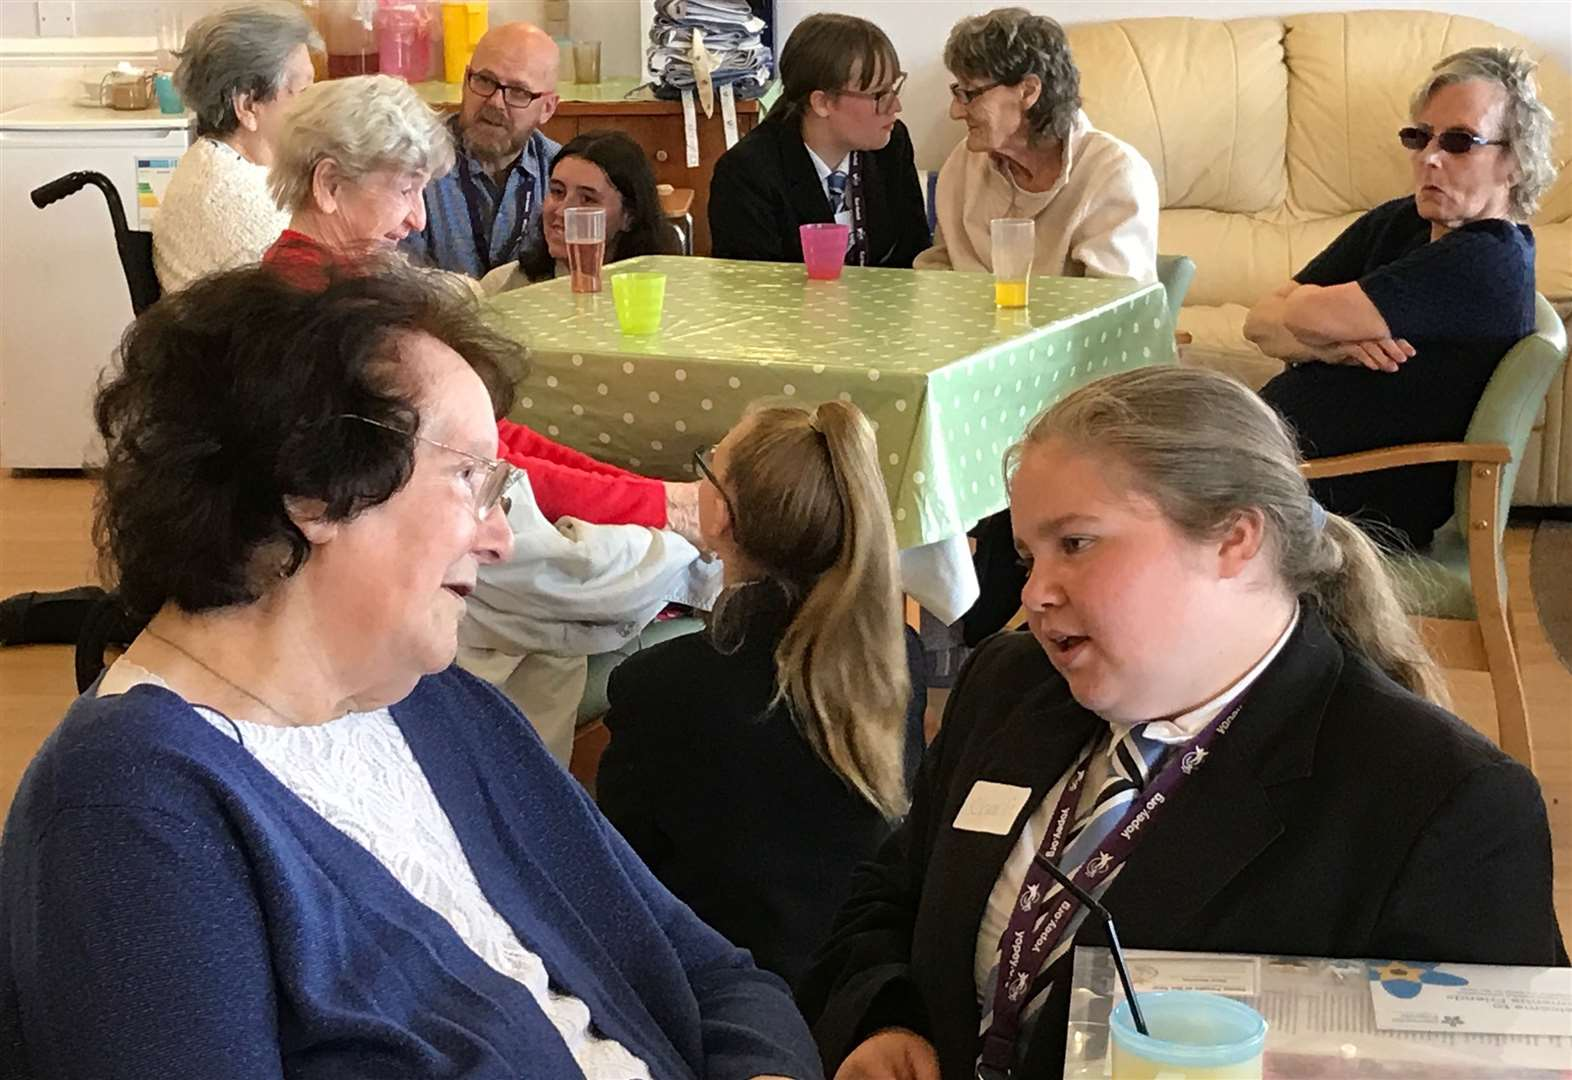 Teenage students befriending skills bring more joy to care home residents with dementia